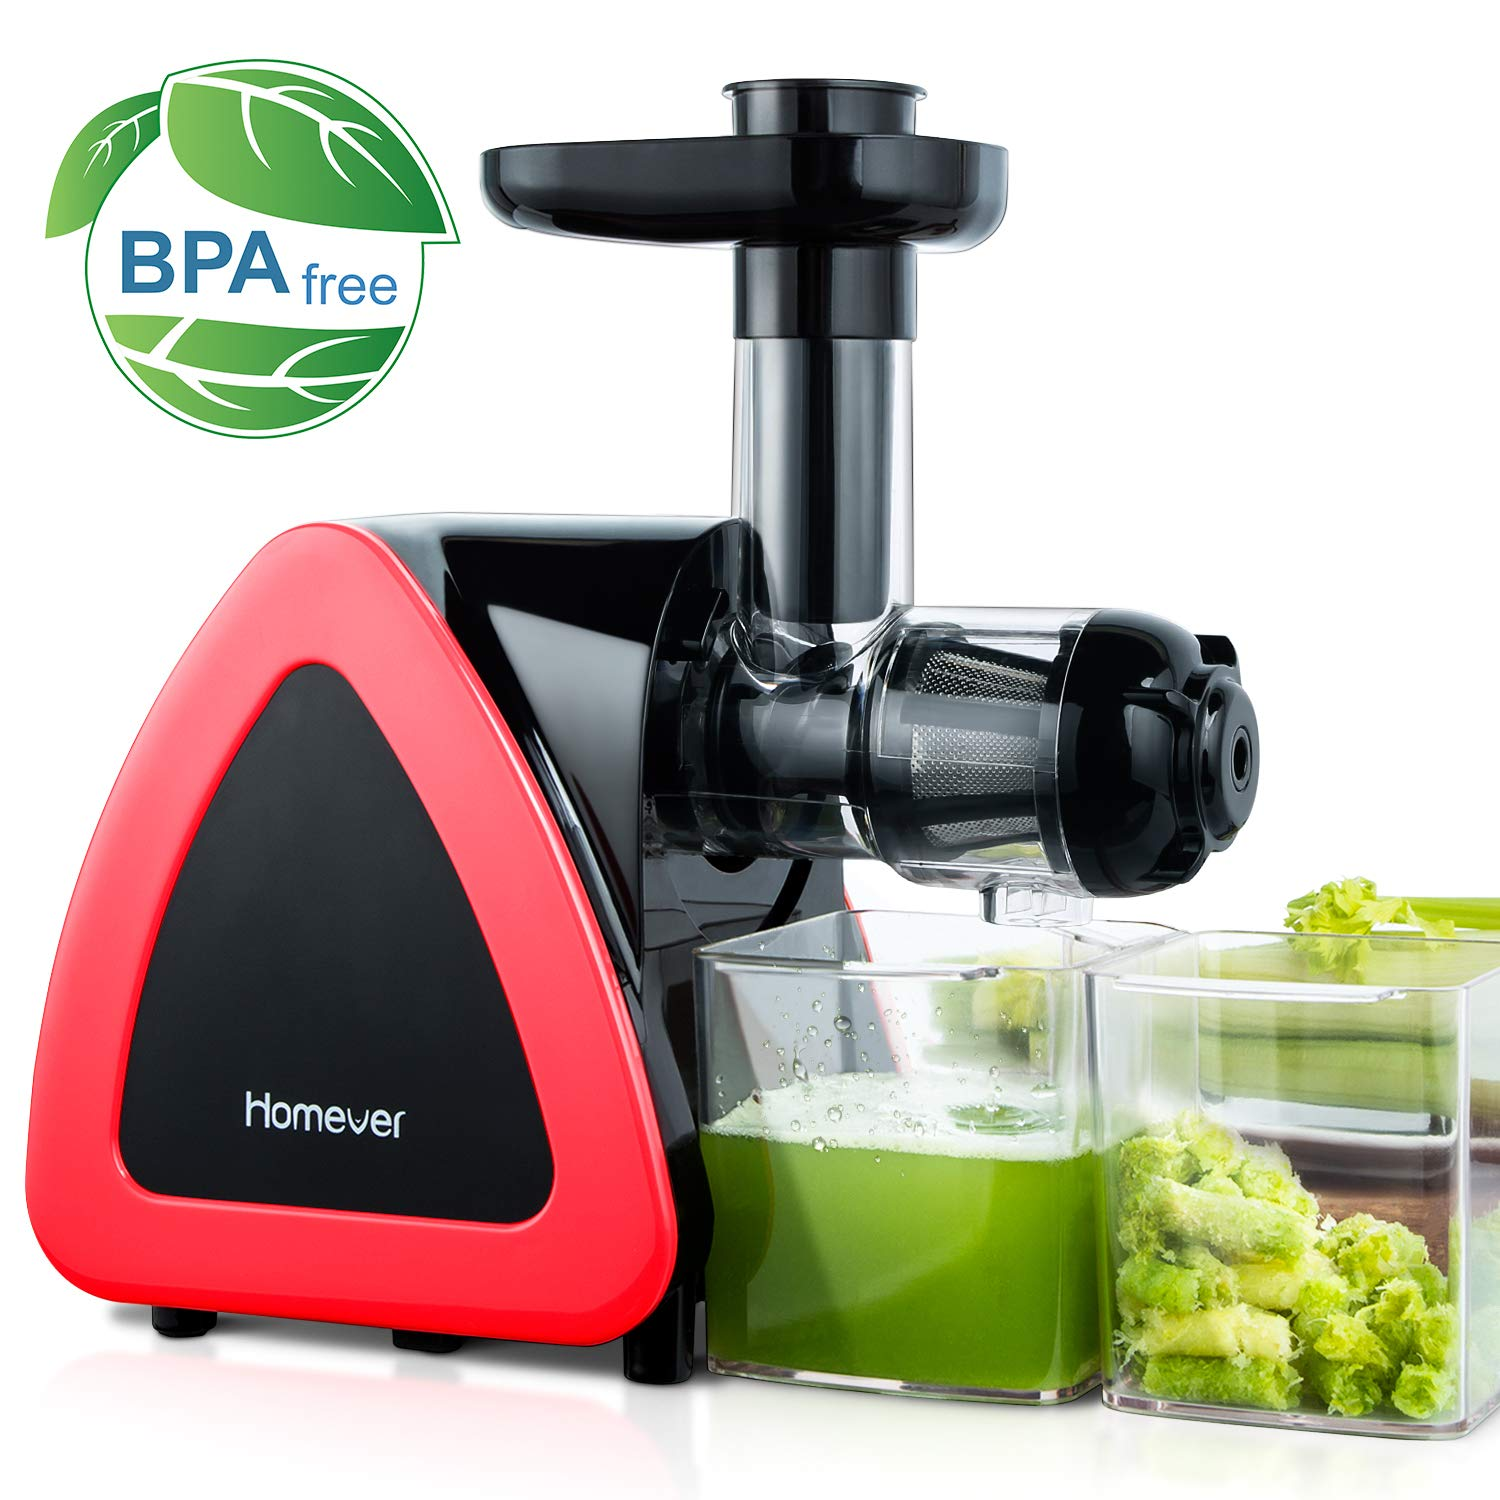 Homever Juicer Machines, Slow Masticating Juicer for Fruits and Vegetables, Quiet Motor, Reverse Function, Easy to Clean Hight Nutrient Cold Press Juicer Machine with Juice Cup & Brush, BPA-Free by Homever (Image #1)